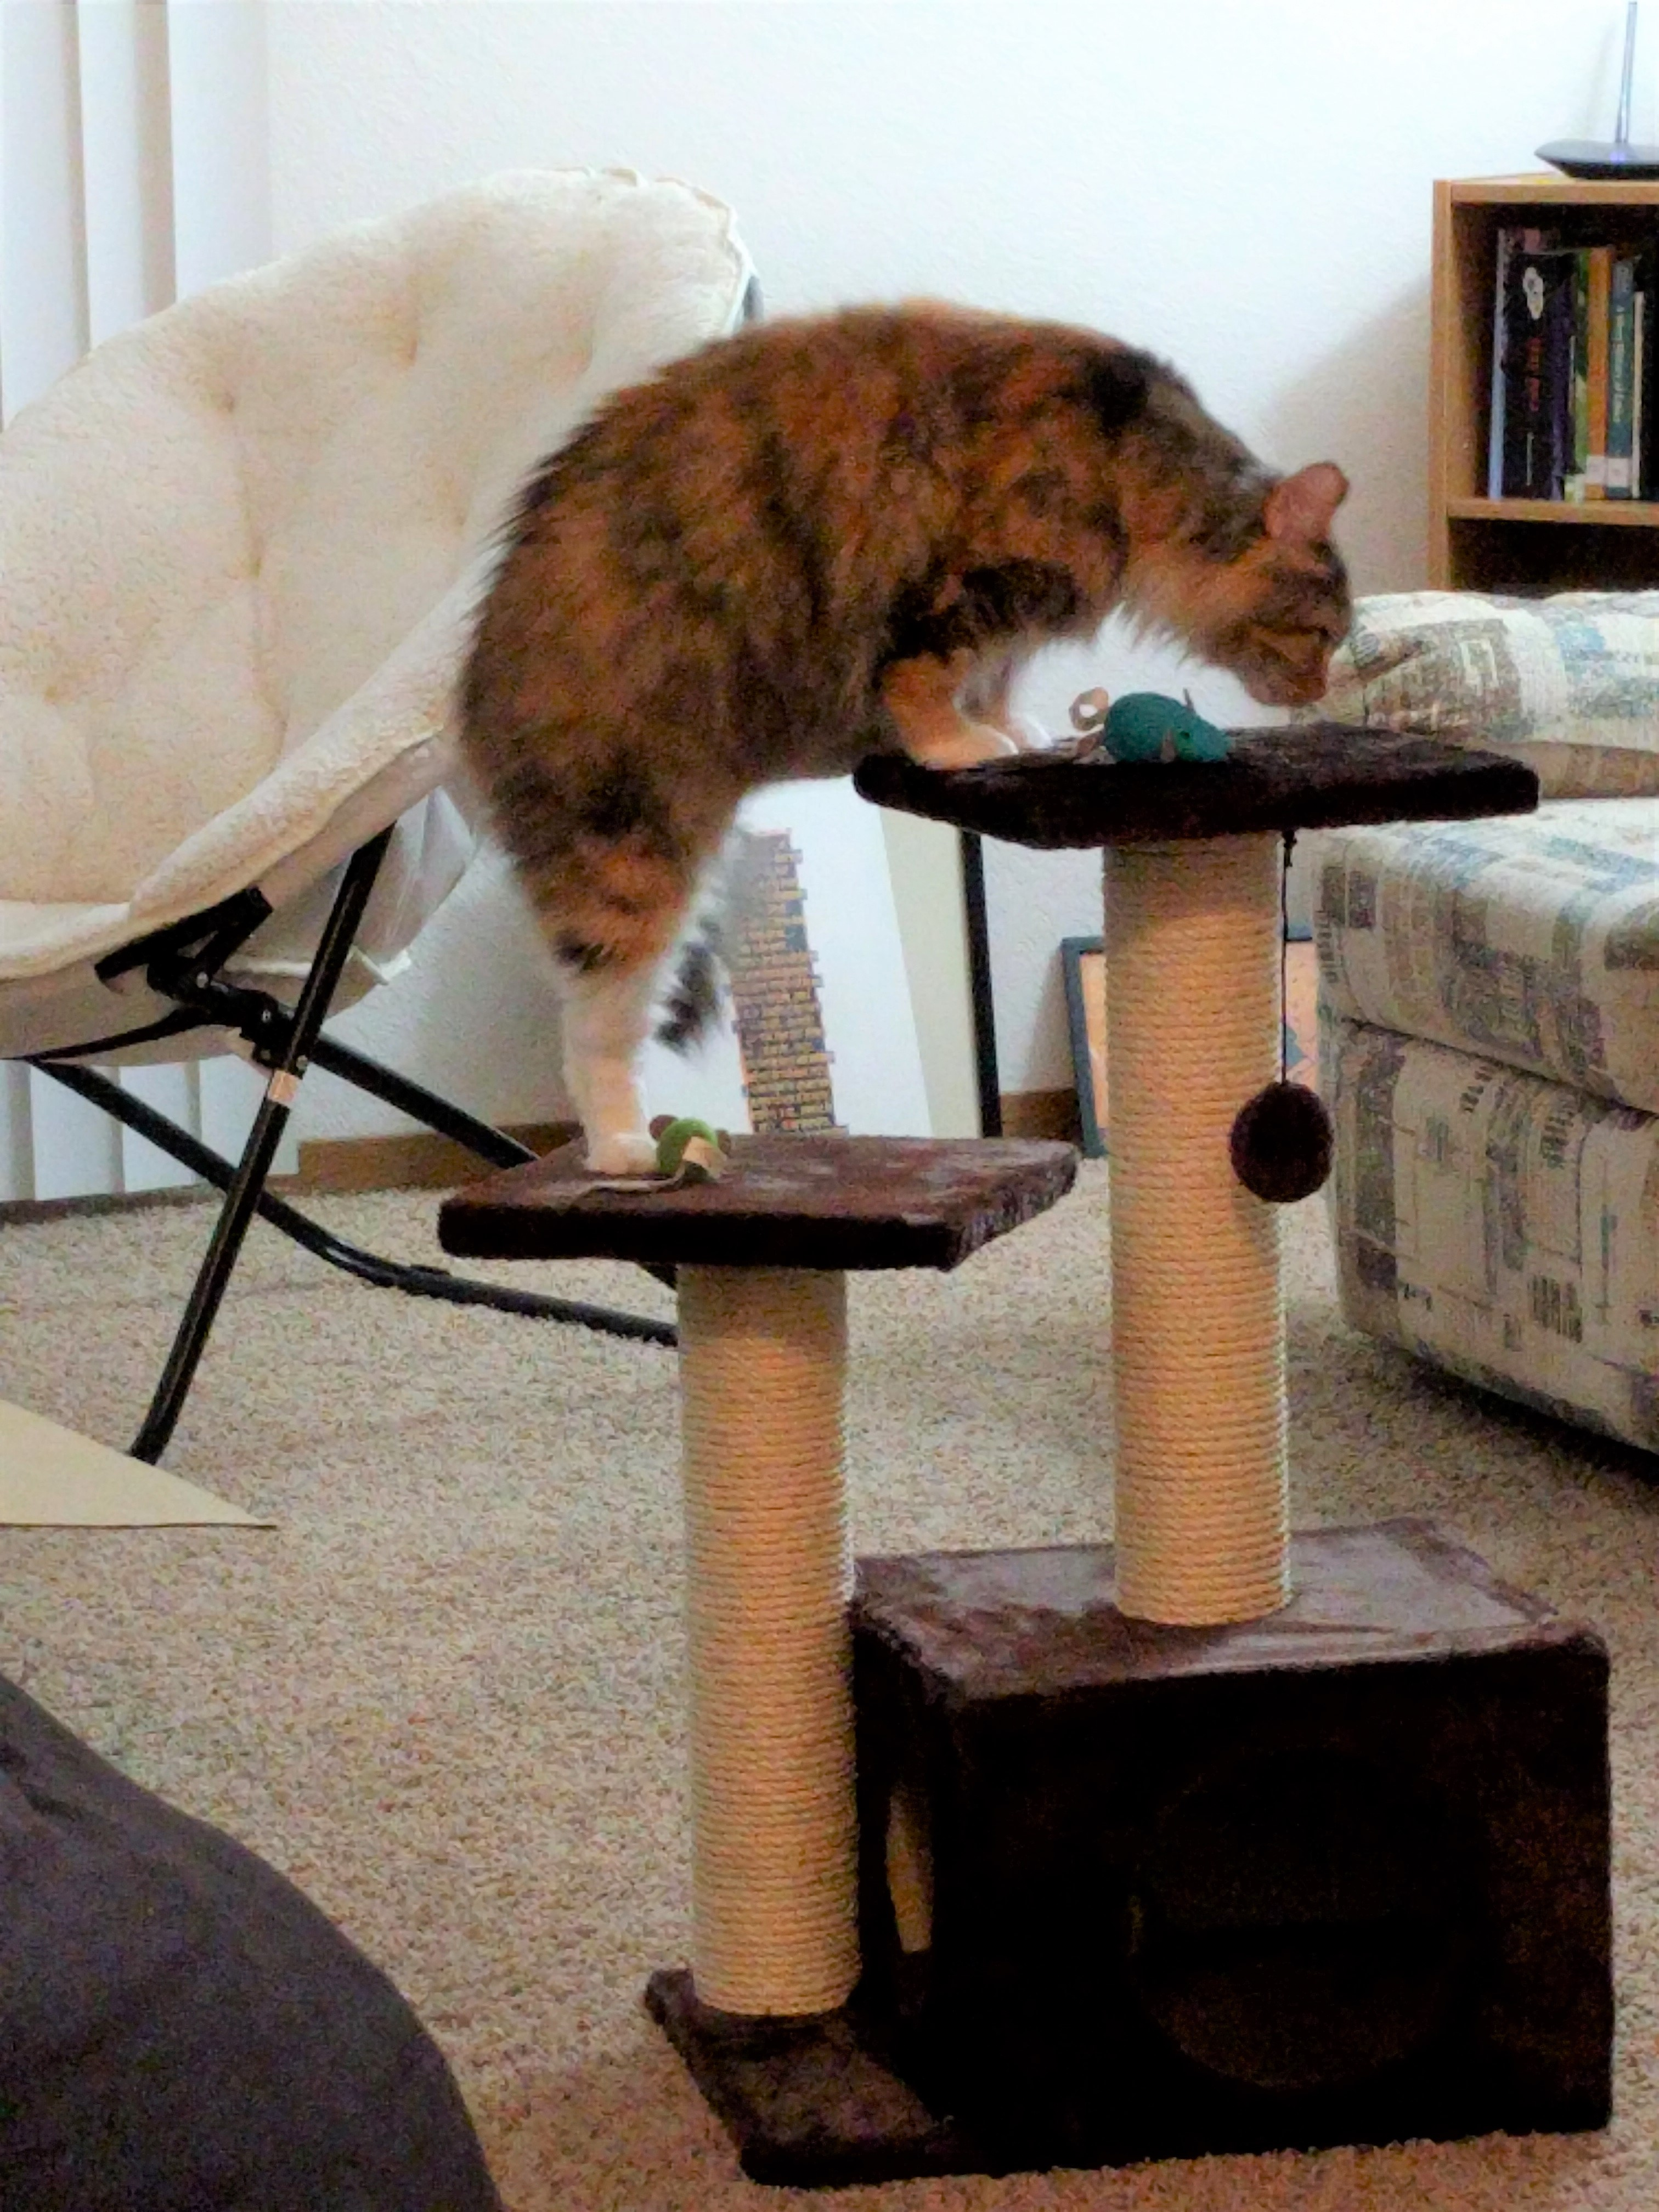 Tally with her hind quarters on one level of a cat tree, and her front paws on the top level